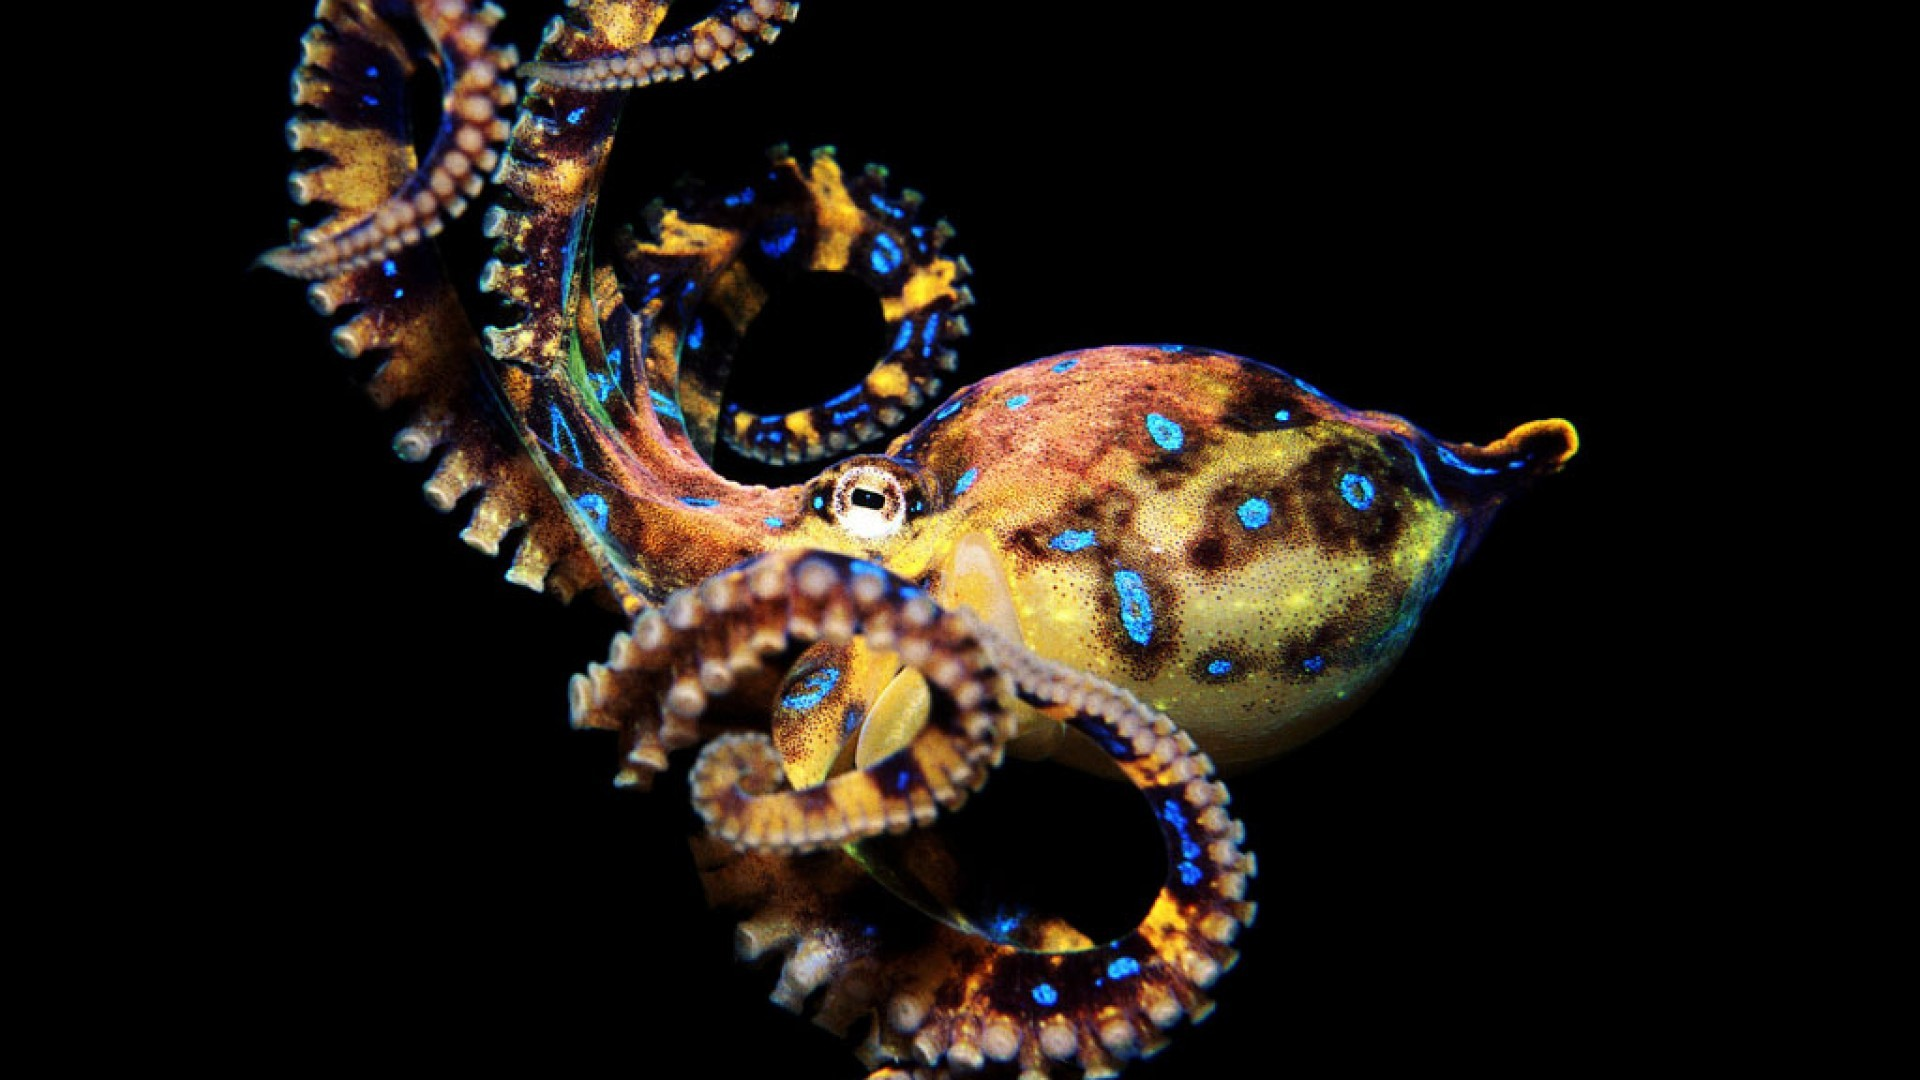 Octopus HD Wallpapers 1080p – HD Wallpapers Inn